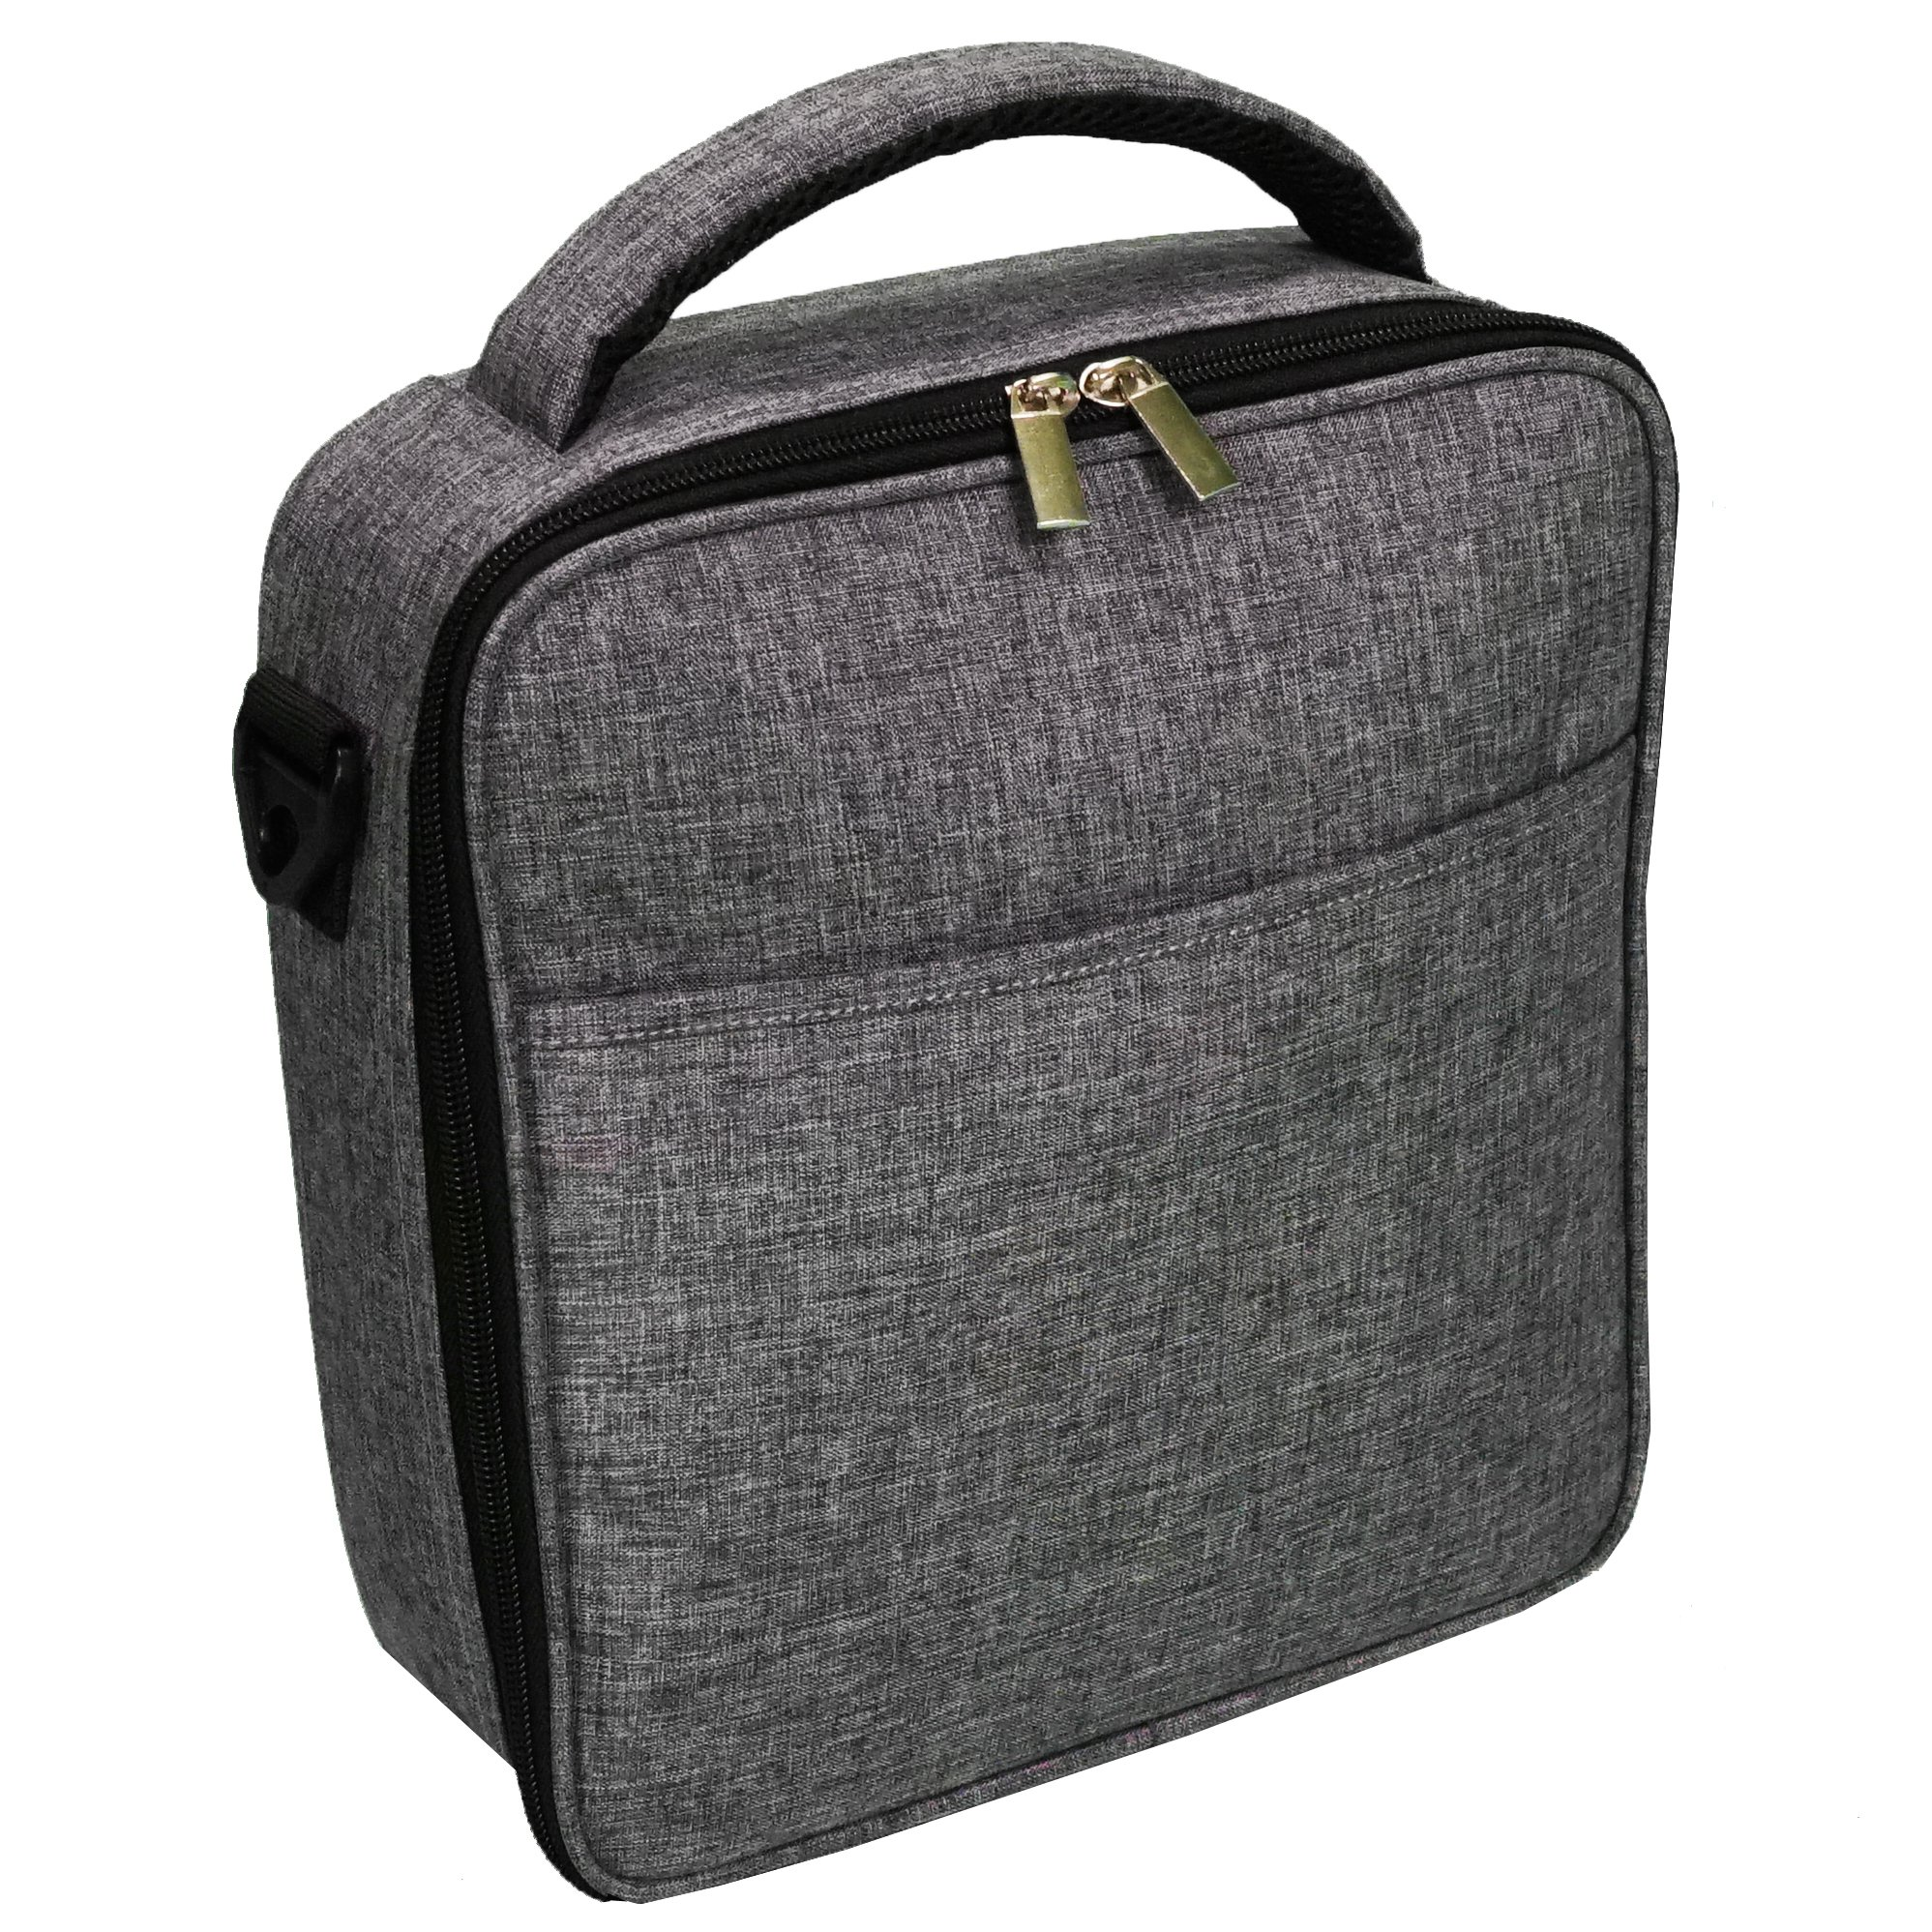 UPPER ORDER Durable Insulated Lunch Box Tote Reusable Cooler Bag 25 Percent Larger Storage (Charcoal Gray) by UPPER ORDER